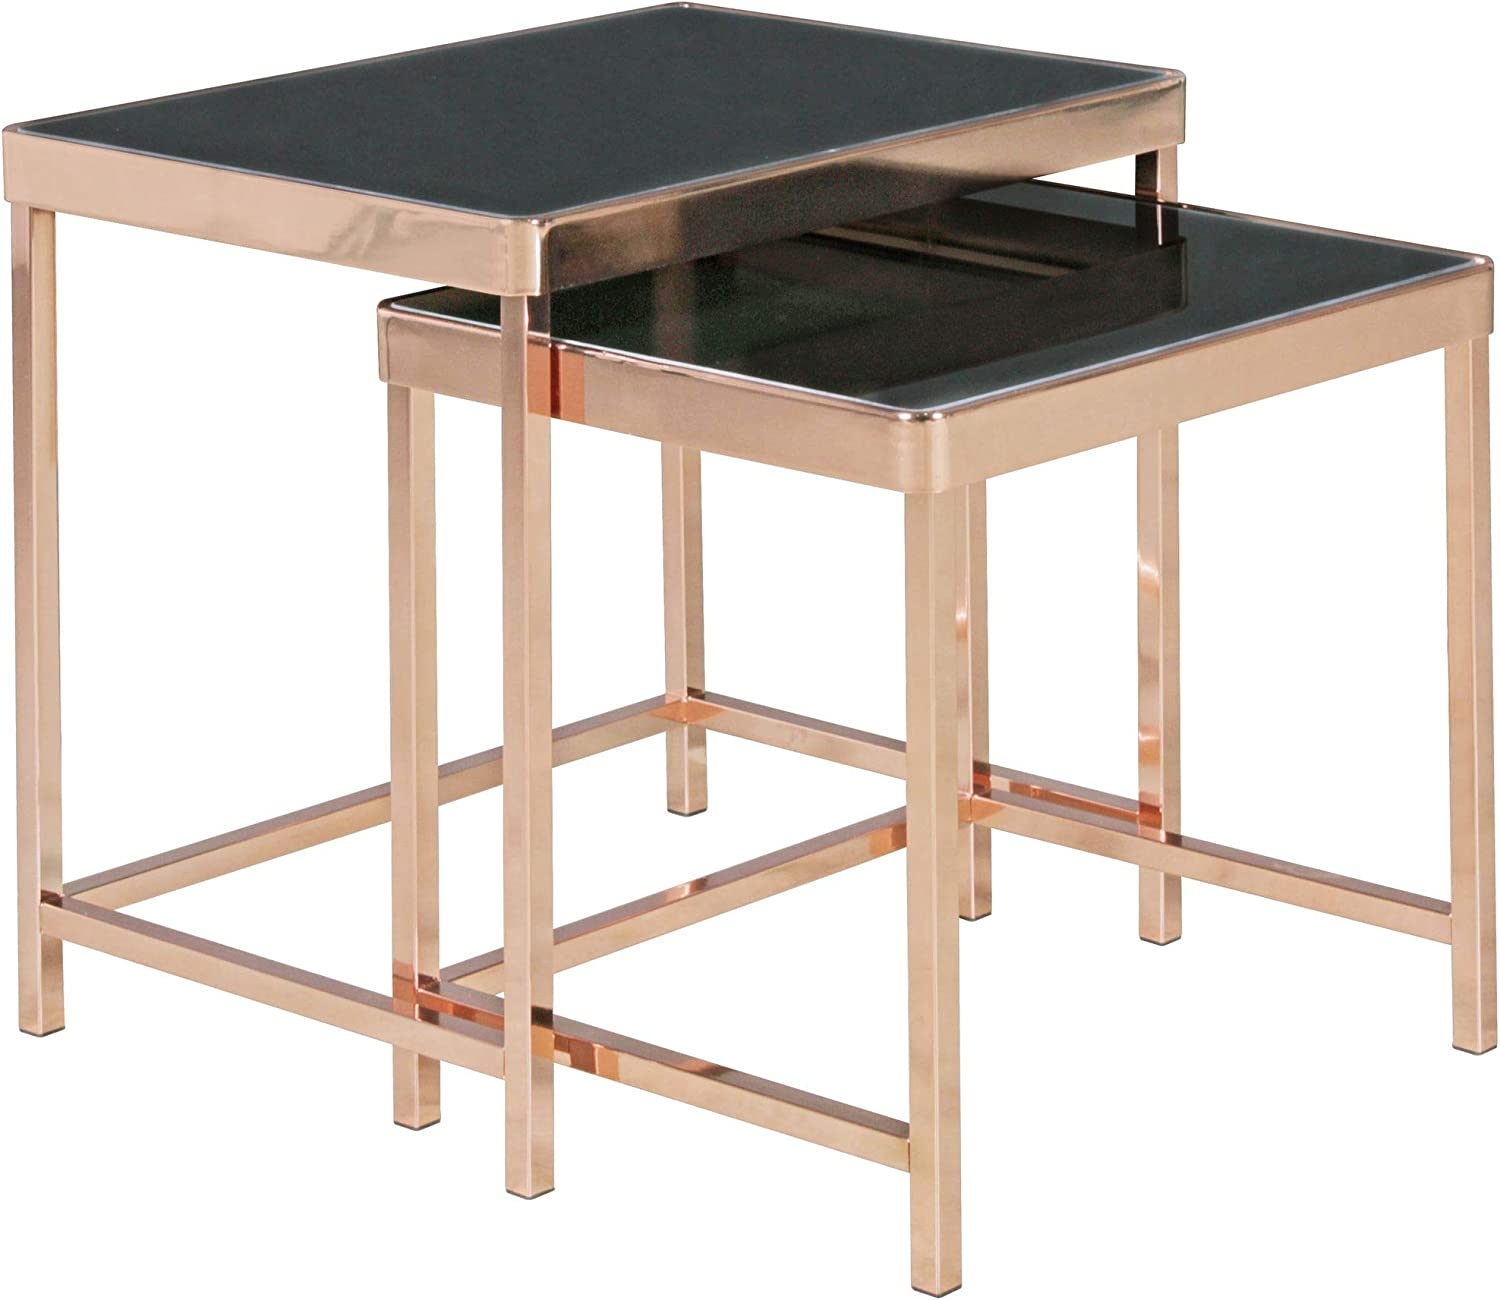 Finebuy Design Set Of 2 Nesting Table Metal Glass Black Copper Mirrored Console Table Coffee Table Modern Square Glass Coffee Table Amazon De Kuche Haushalt